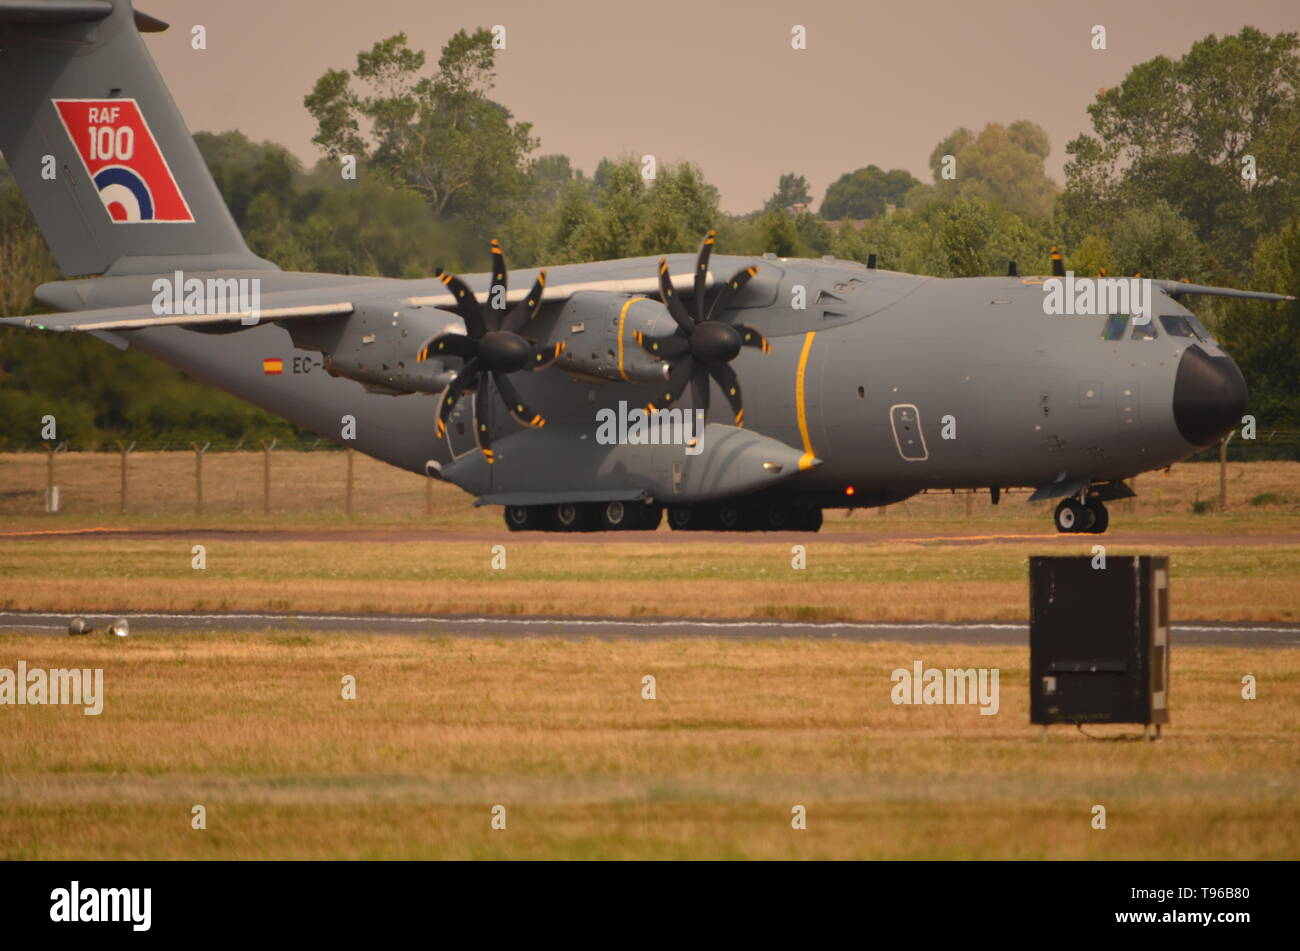 Airbus A400M Atlas,  military transport aircraft. - Stock Image